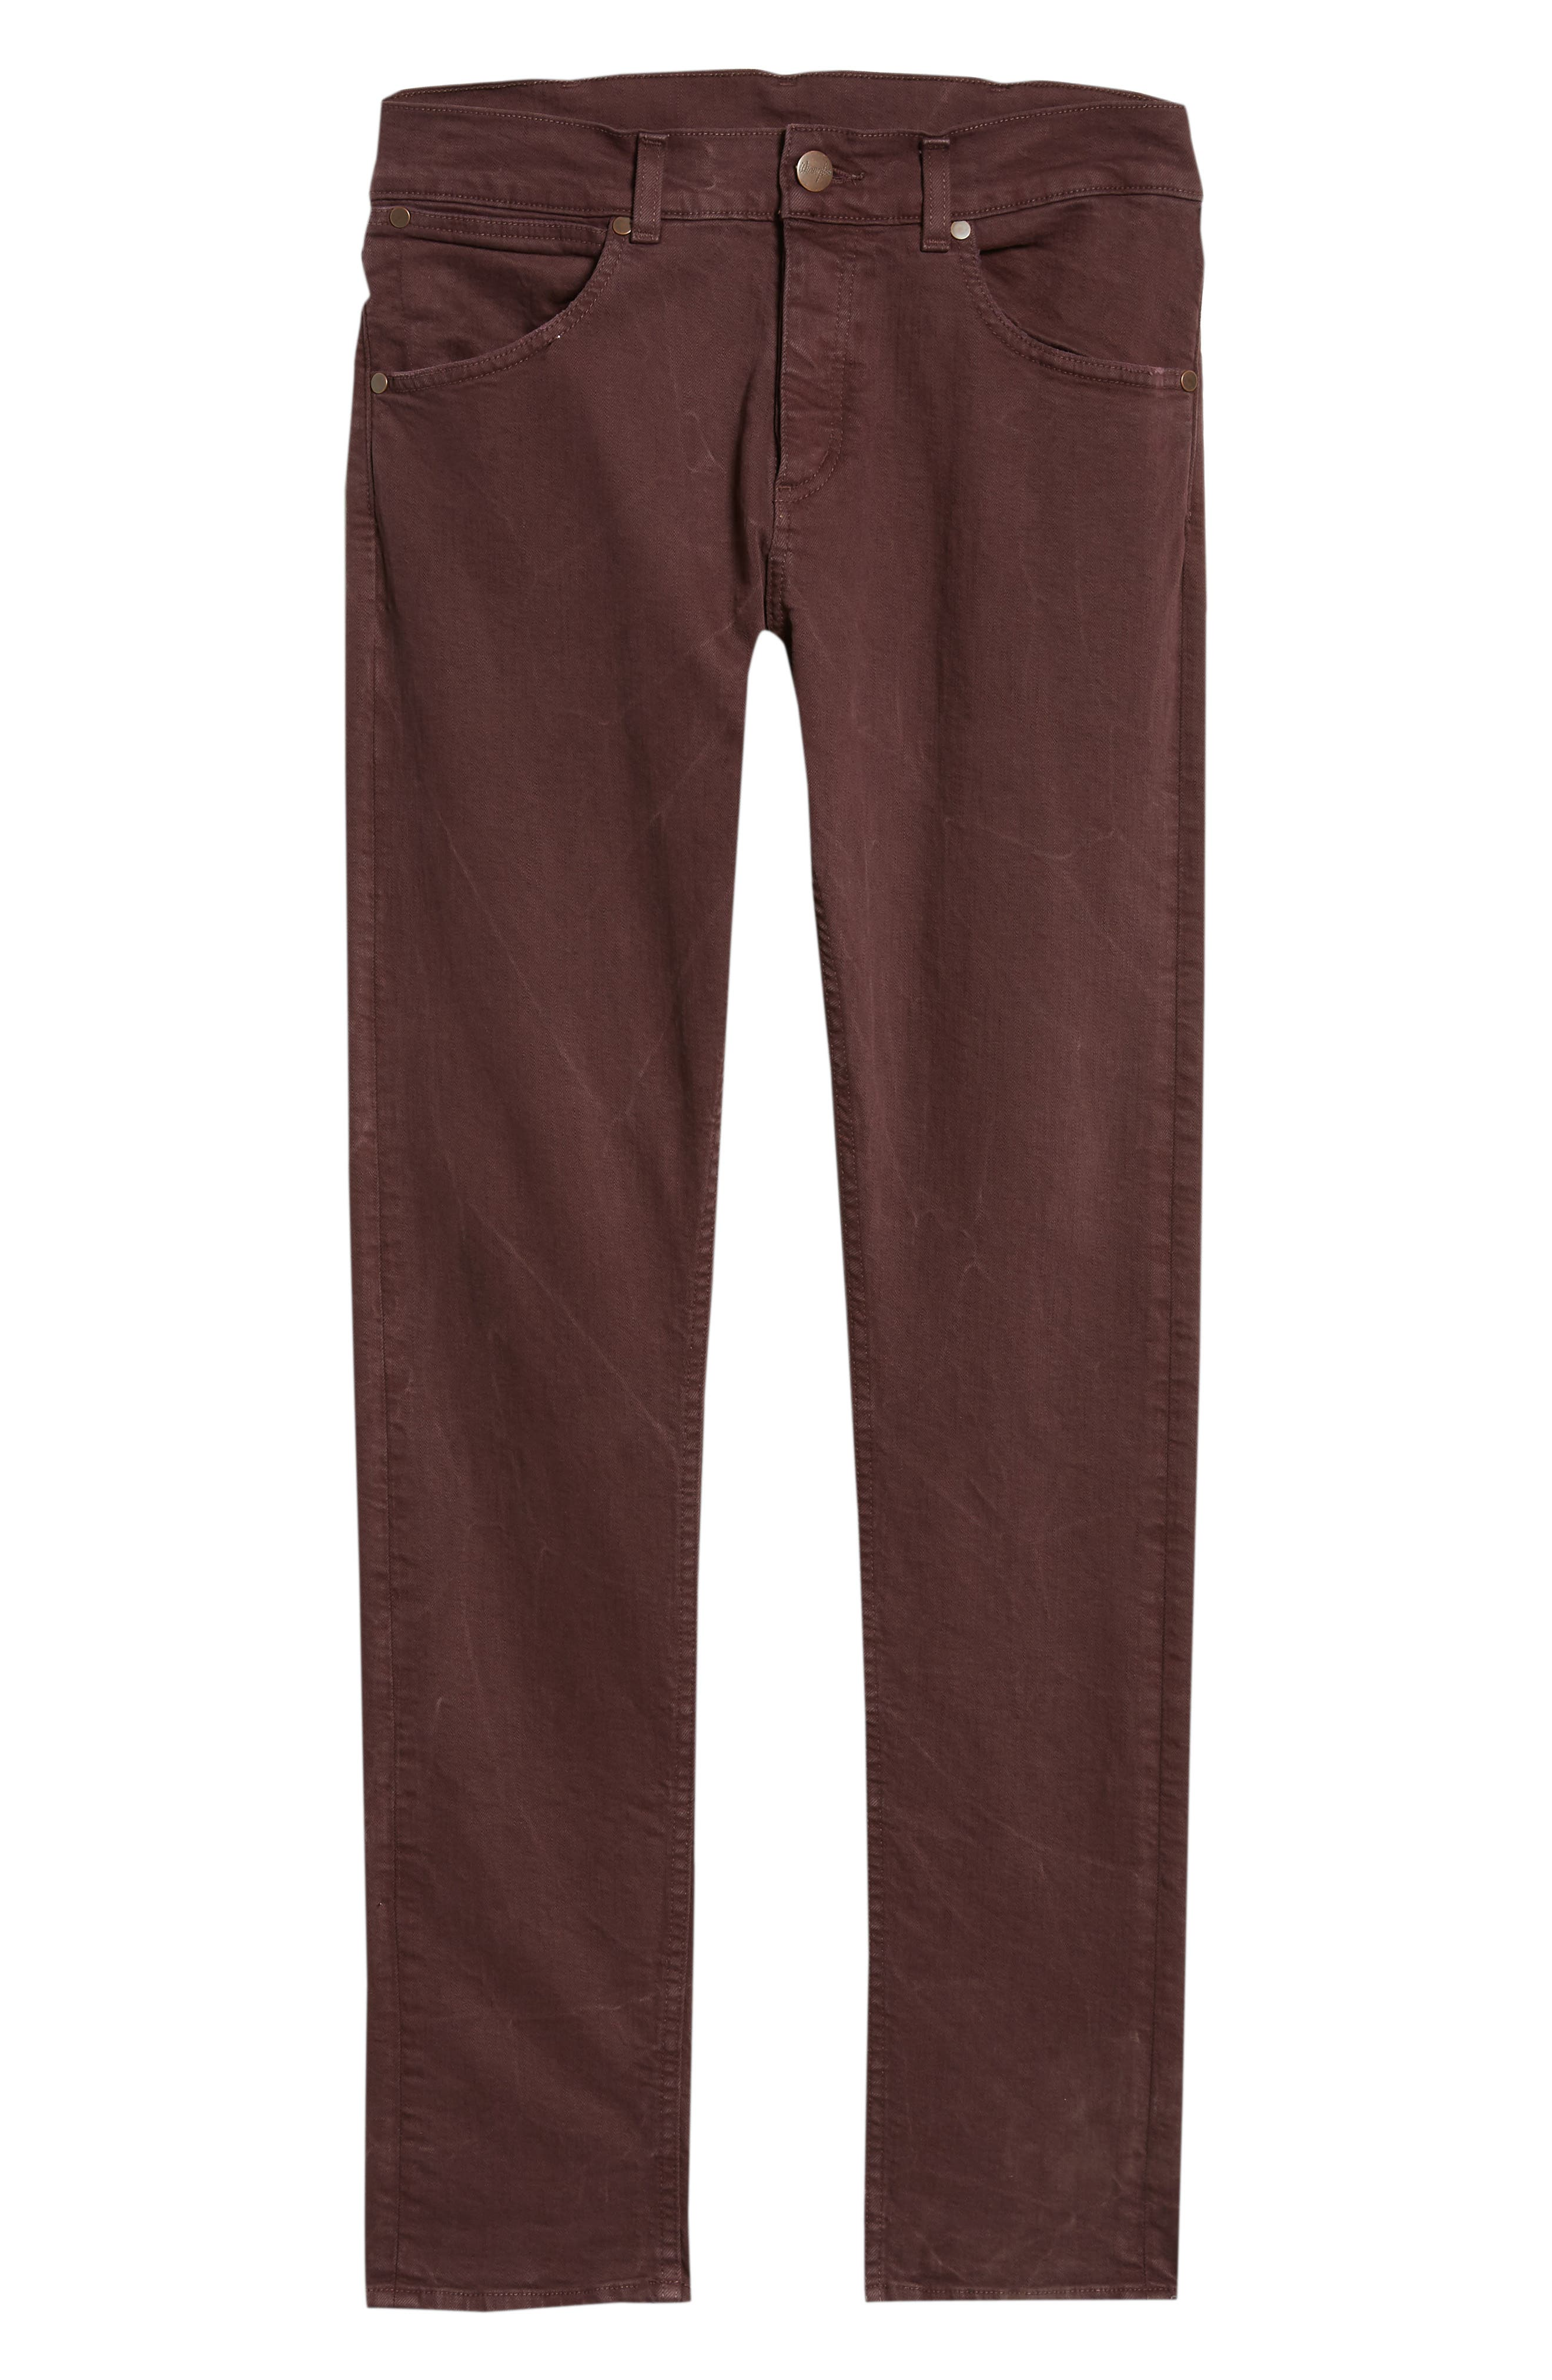 Larston Slim Fit Jeans,                             Alternate thumbnail 6, color,                             AUBERGINE